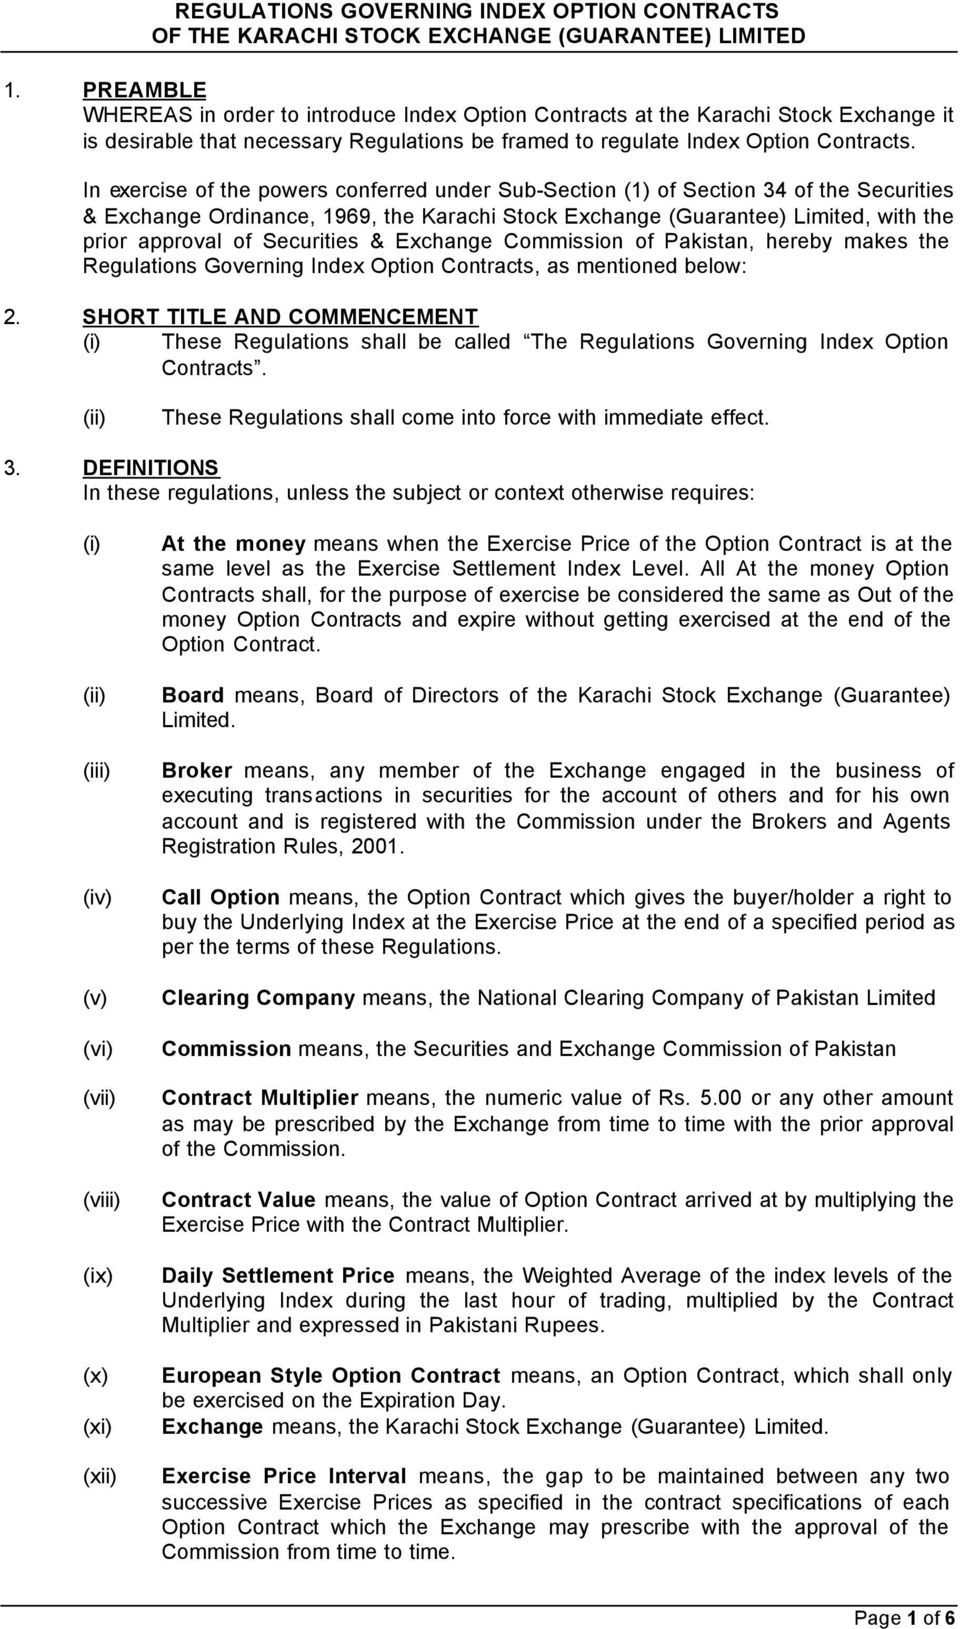 In exercise of the powers conferred under Sub-Section (1) of Section 34 of the Securities & Exchange Ordinance, 1969, the Karachi Stock Exchange (Guarantee) Limited, with the prior approval of